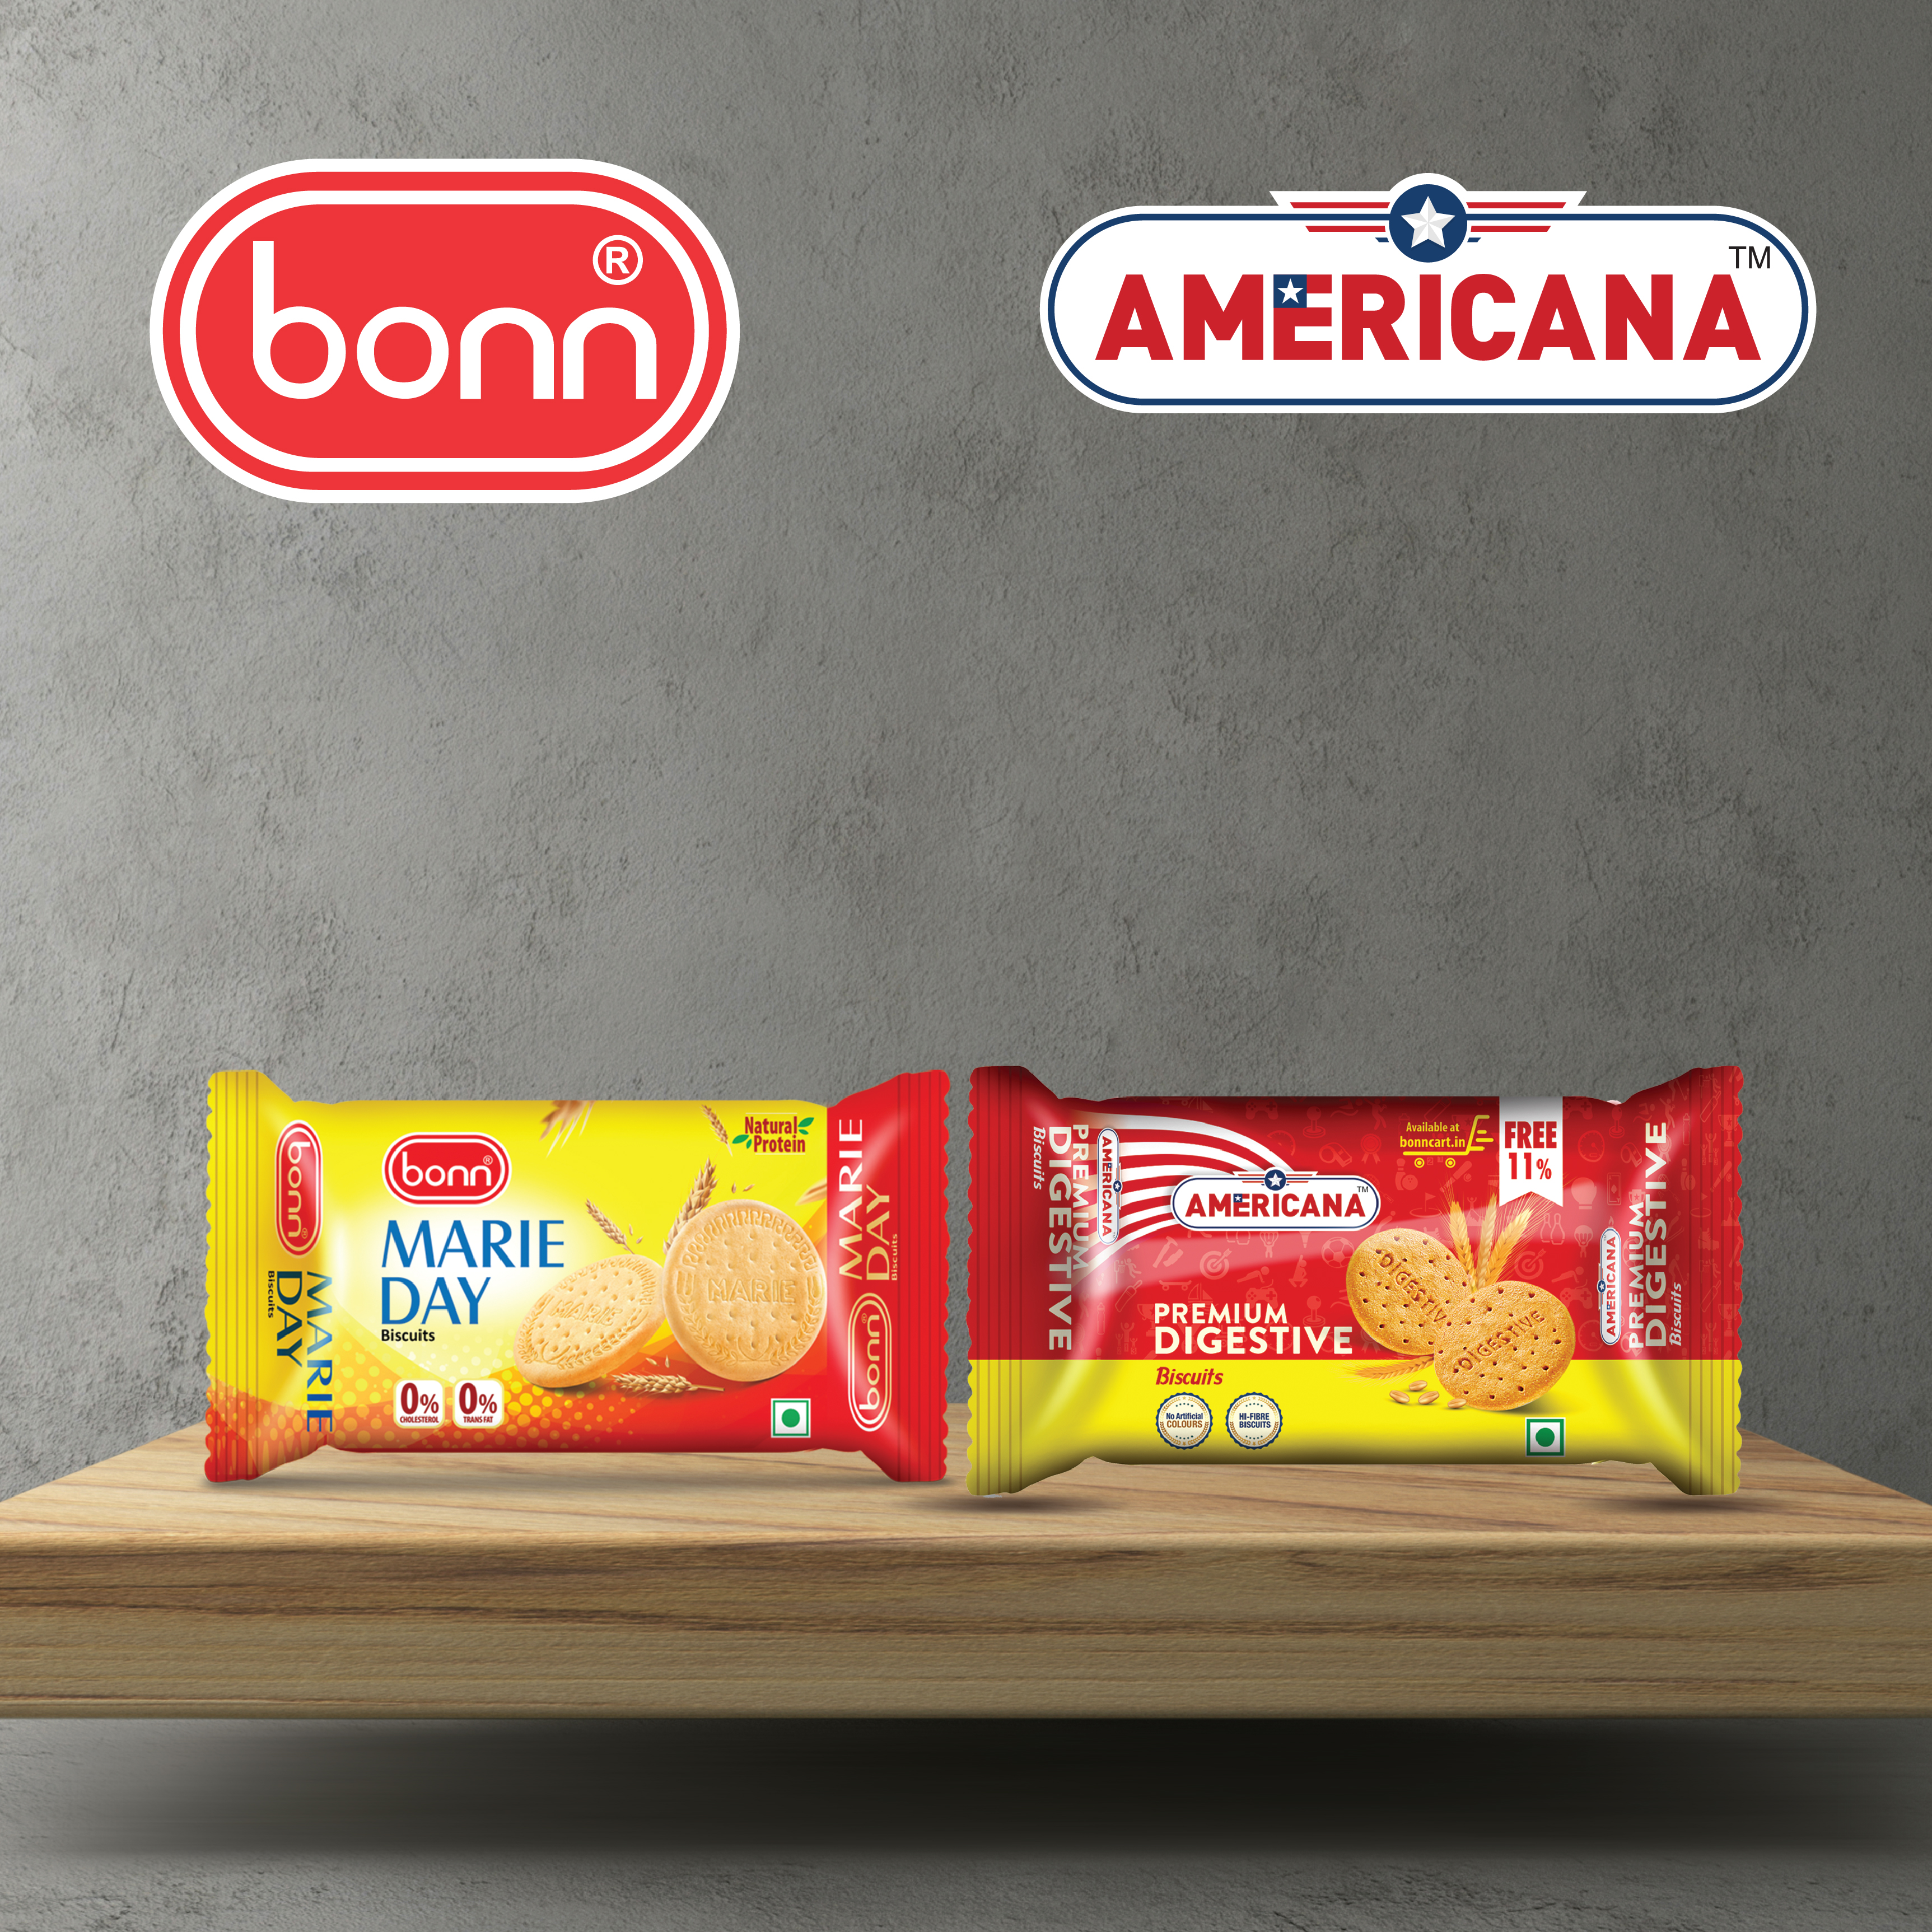 Digestive combo (Marie Day Biscuits 80g and Americana Digestive 78g), 5 Pack each